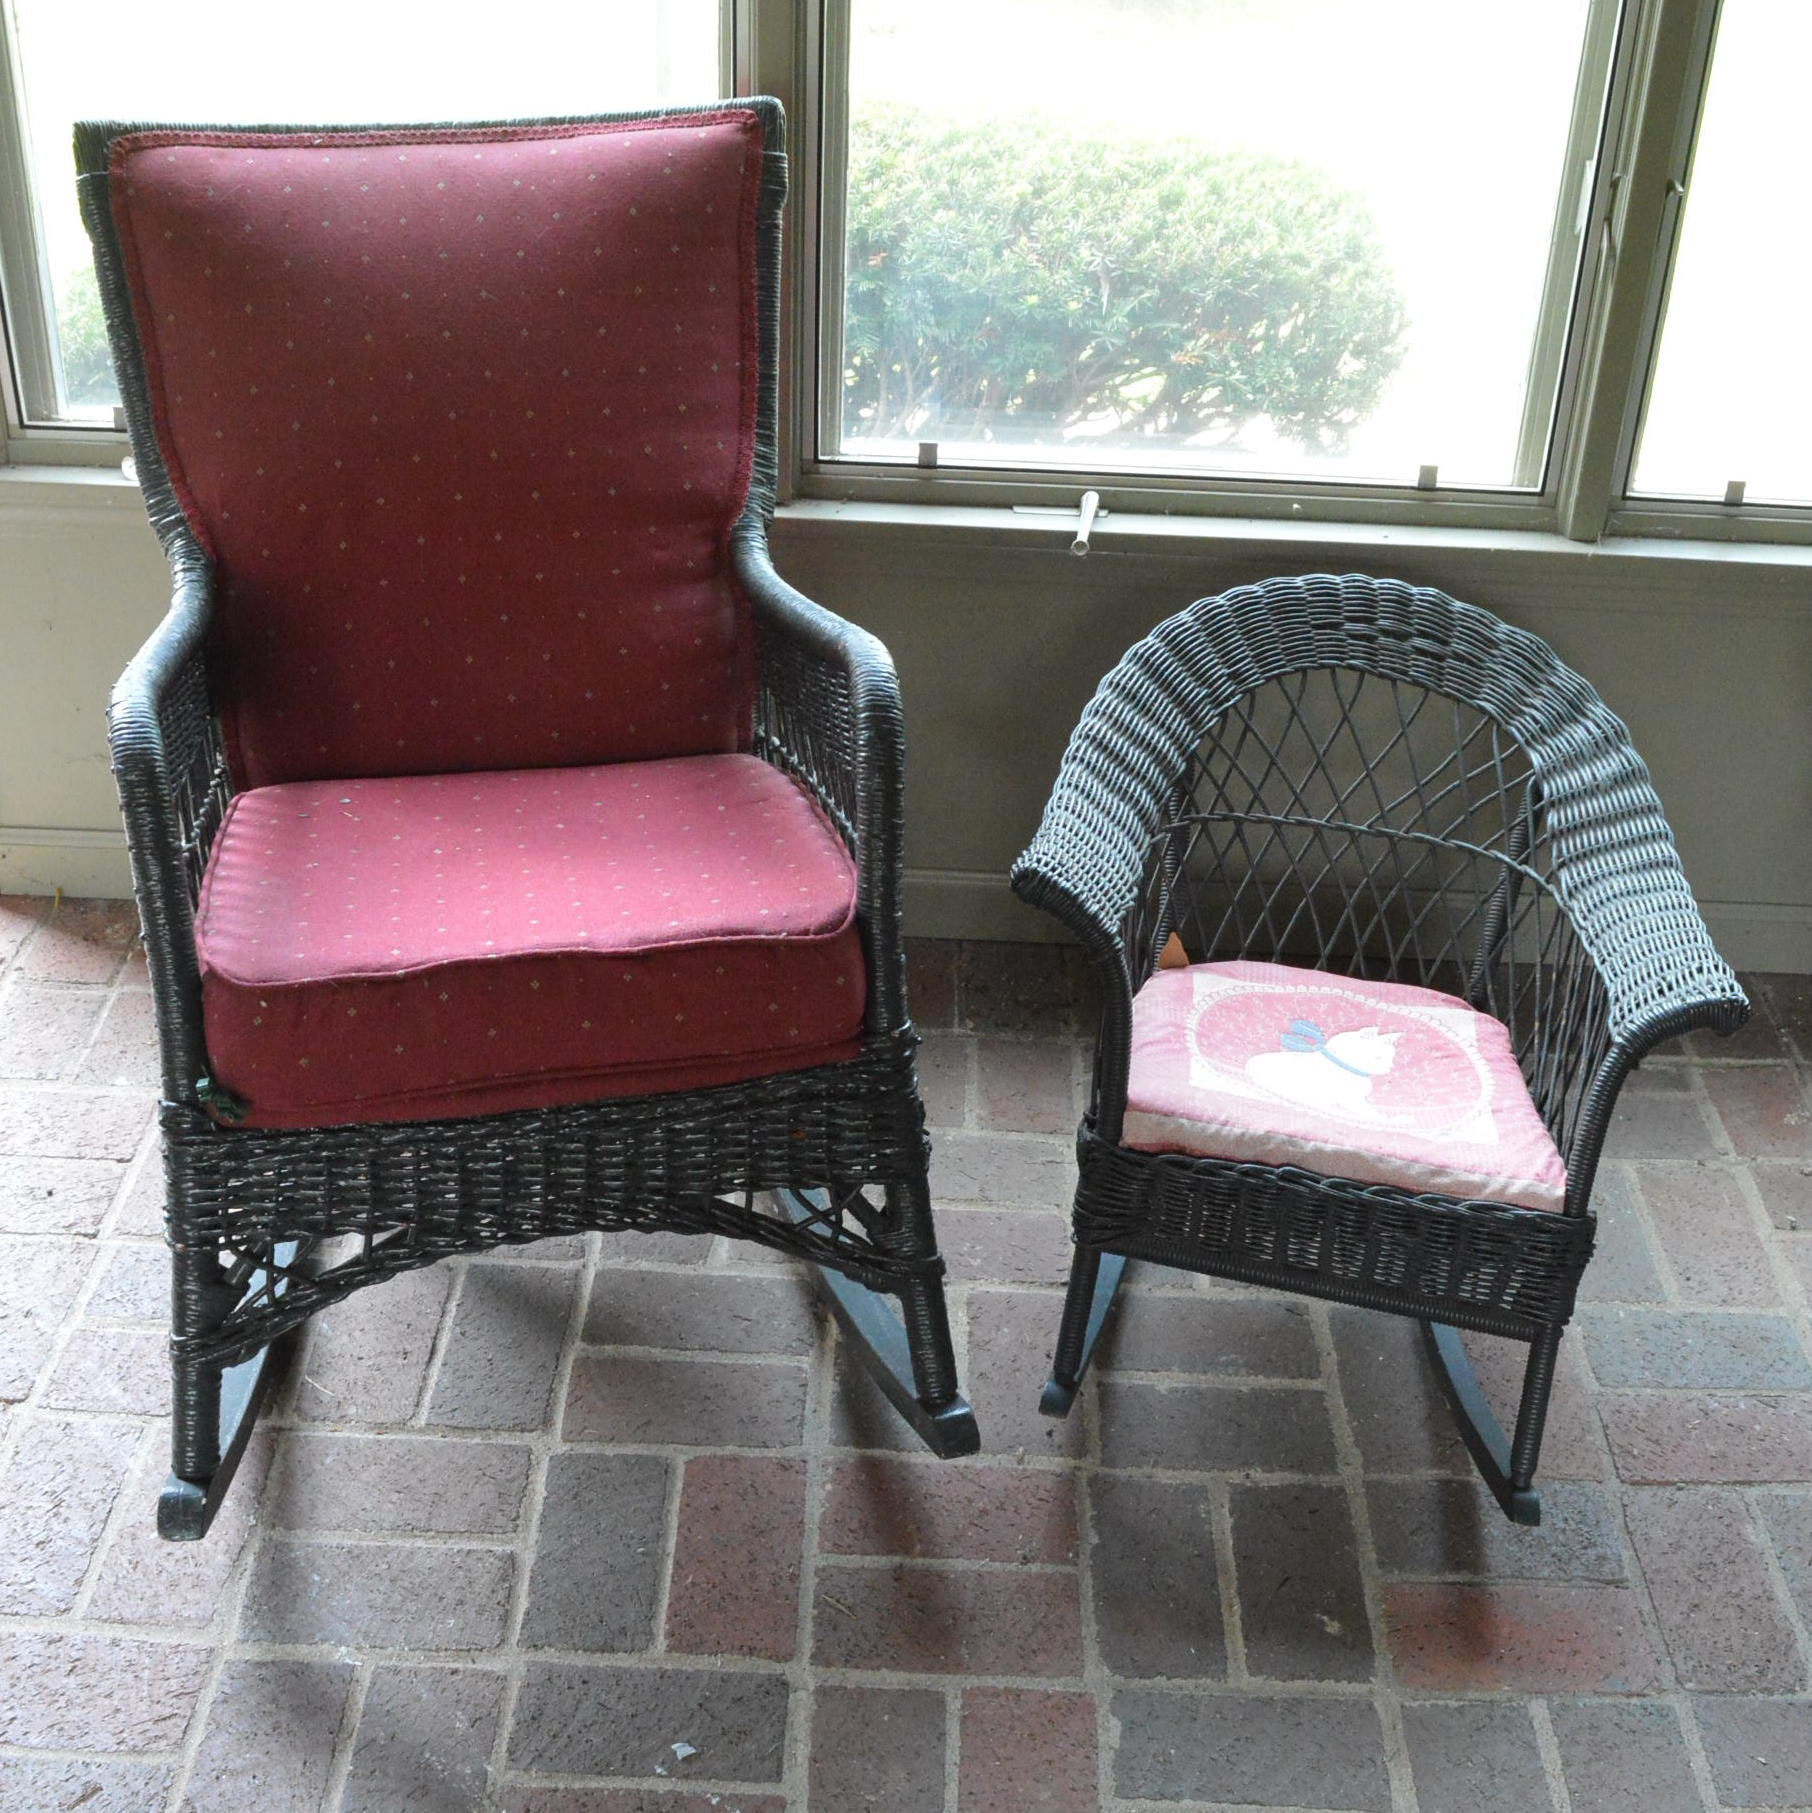 Pairing of Wicker Rocking Chairs